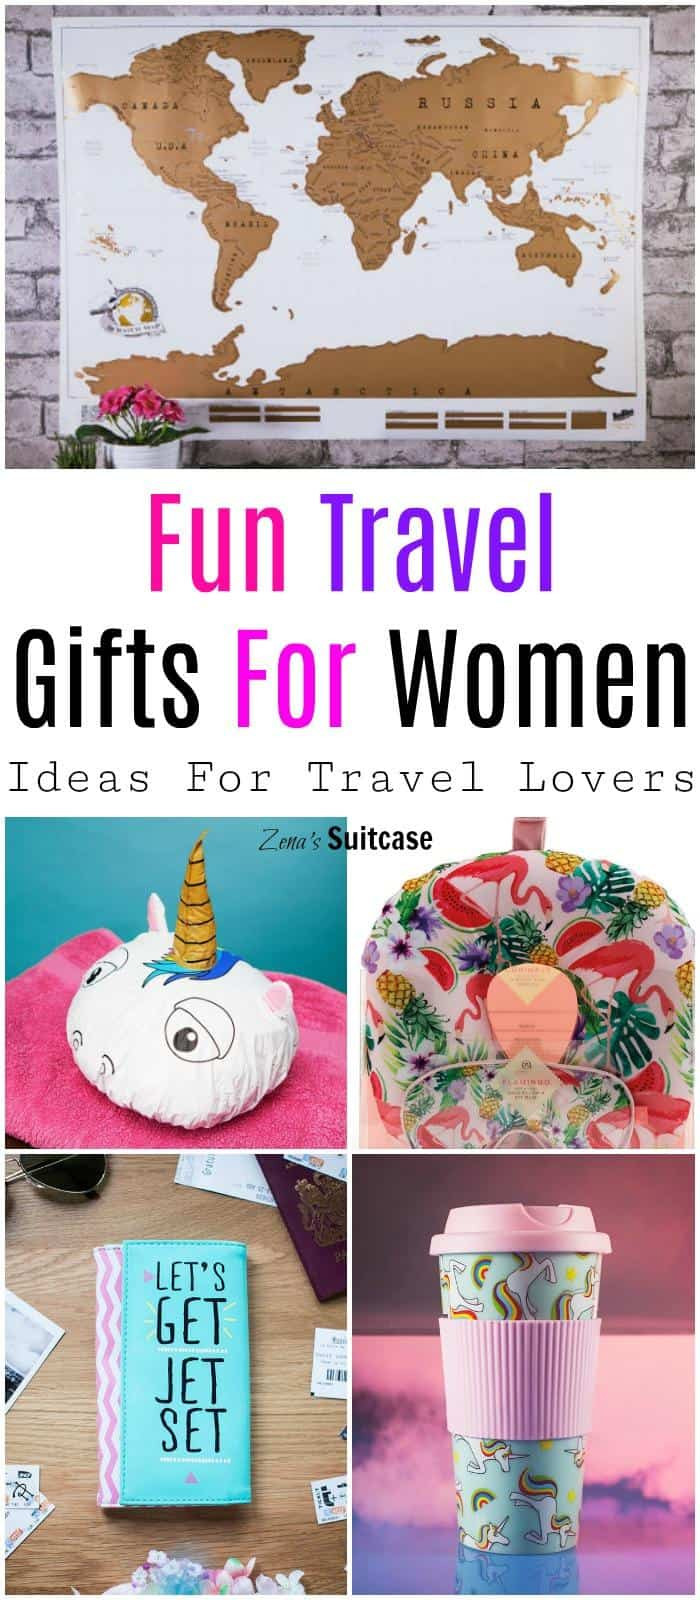 Best ideas about Gift Ideas For Someone Going Travelling . Save or Pin Best Travel Gifts For Her That She'll Love – Zena s Suitcase Now.